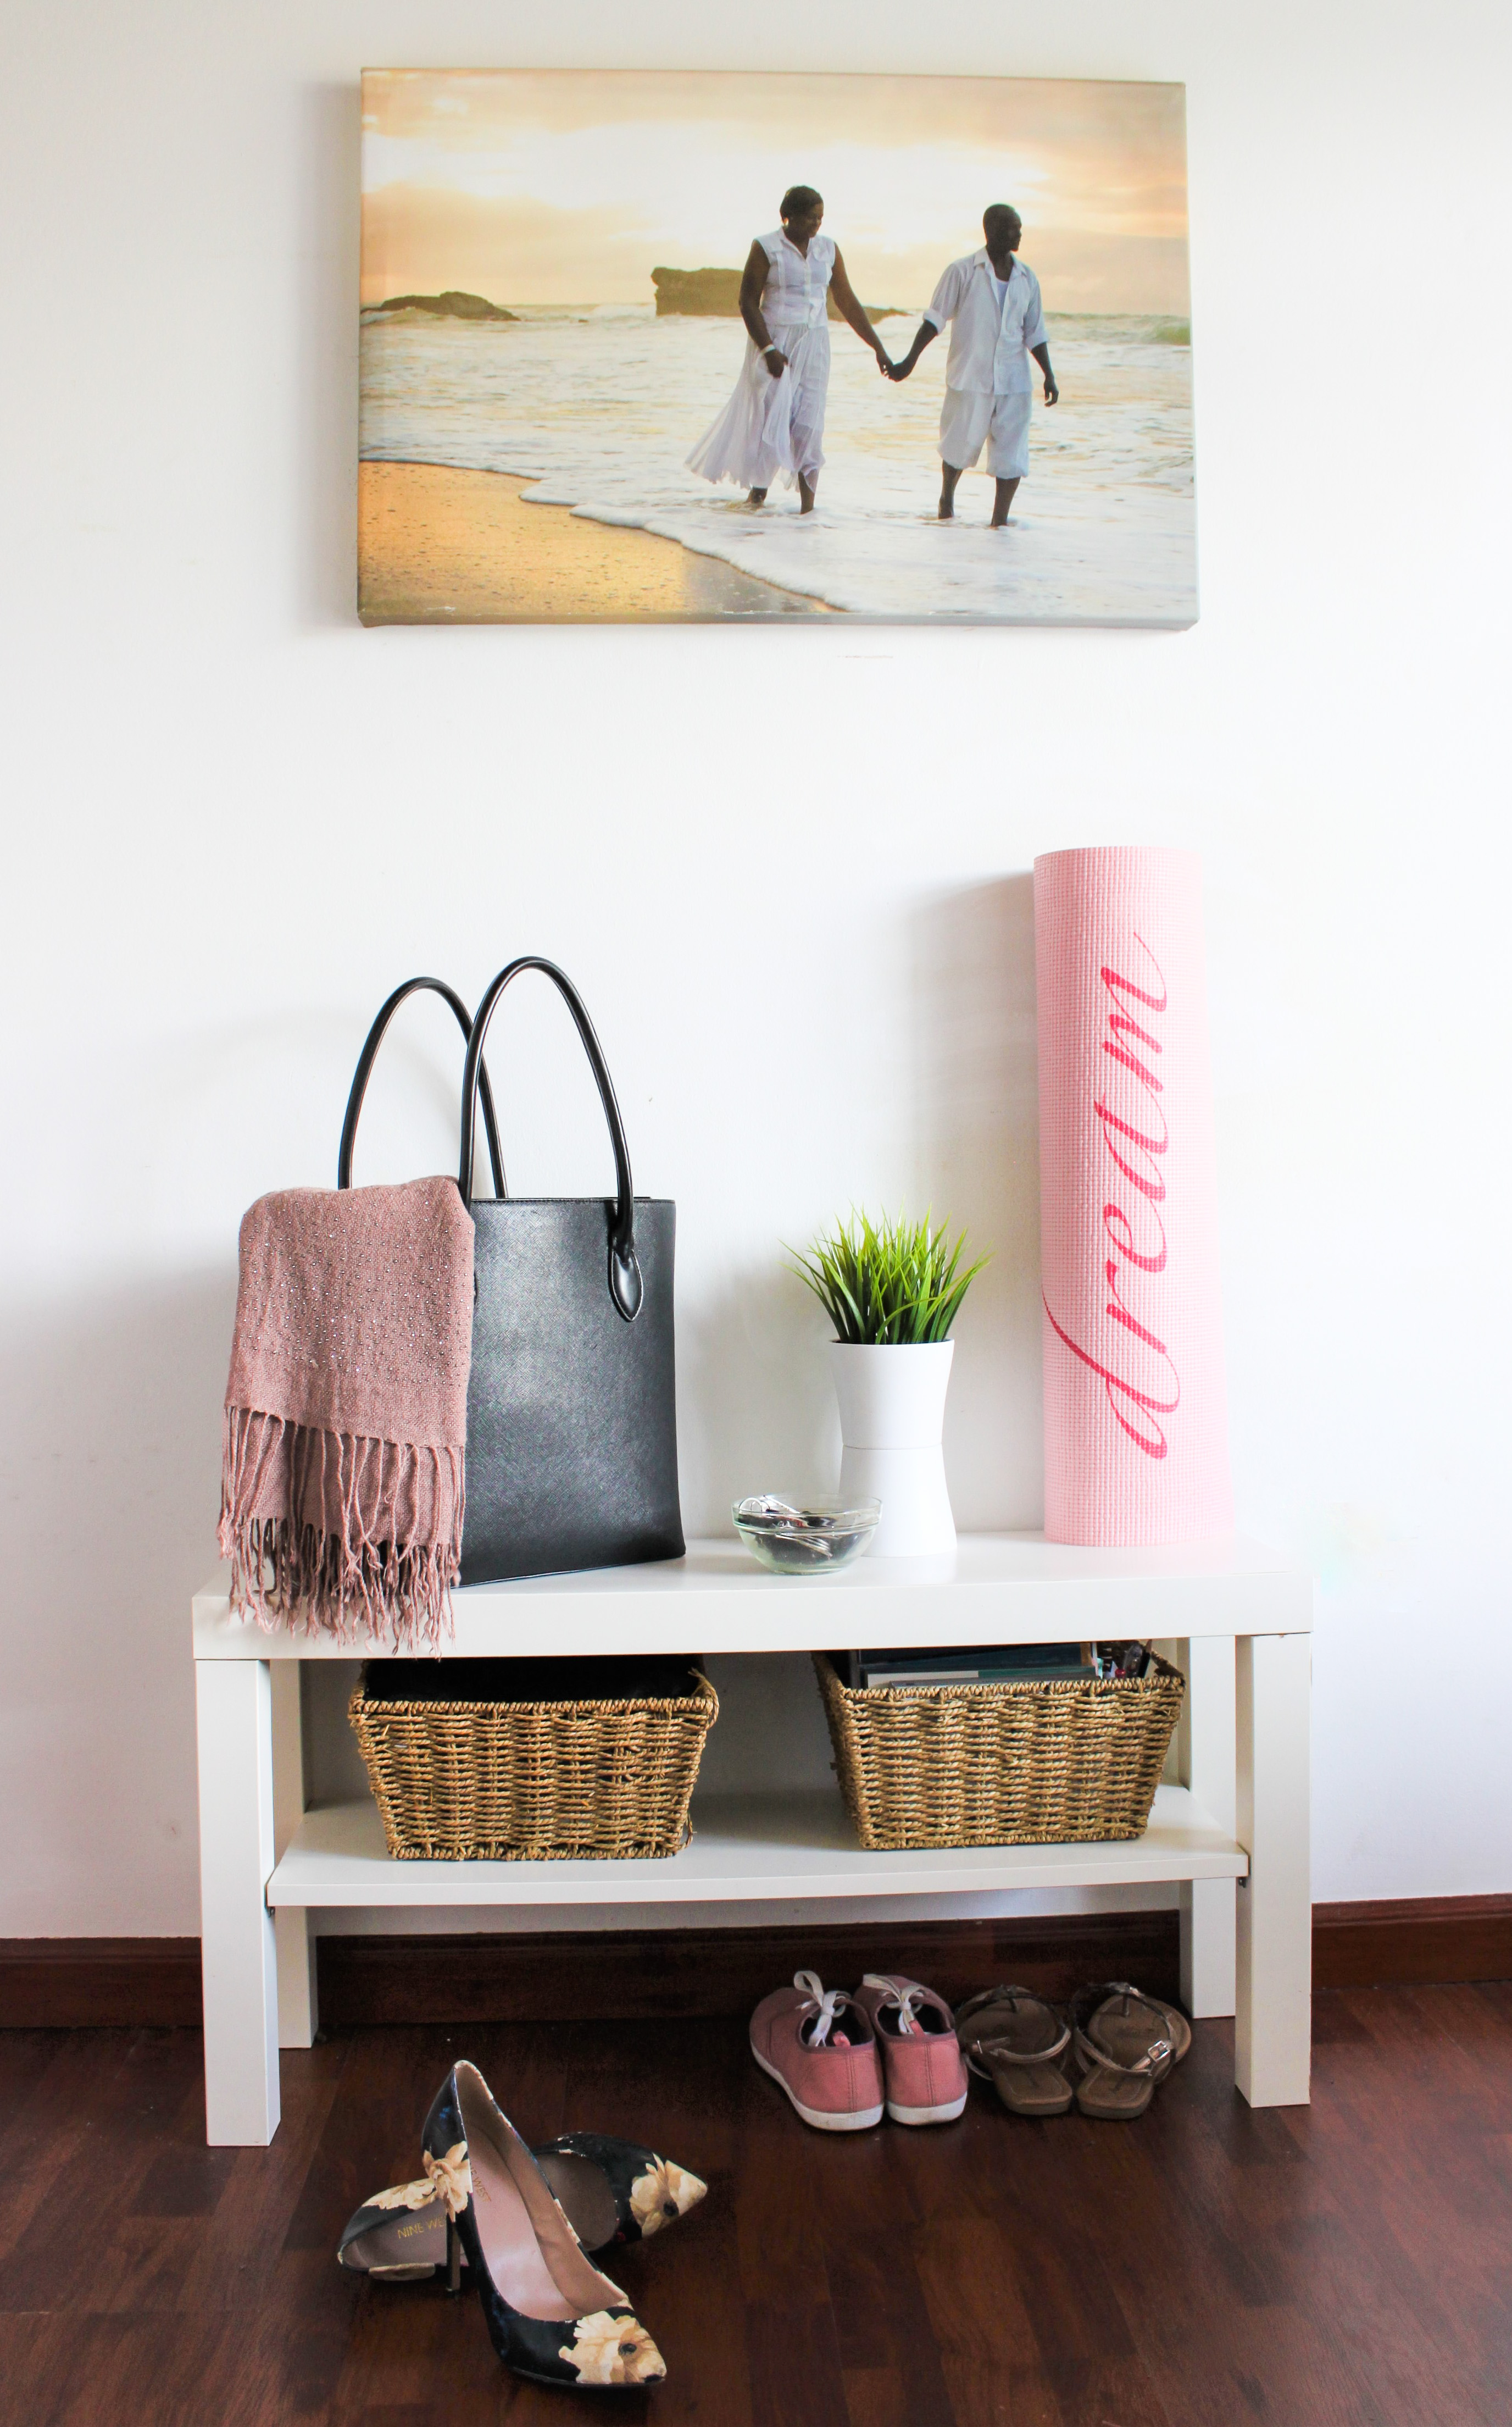 Ikea LACK TV bench perfect for a small entryway (6 ways to use the Ikea LACK TV Bench)